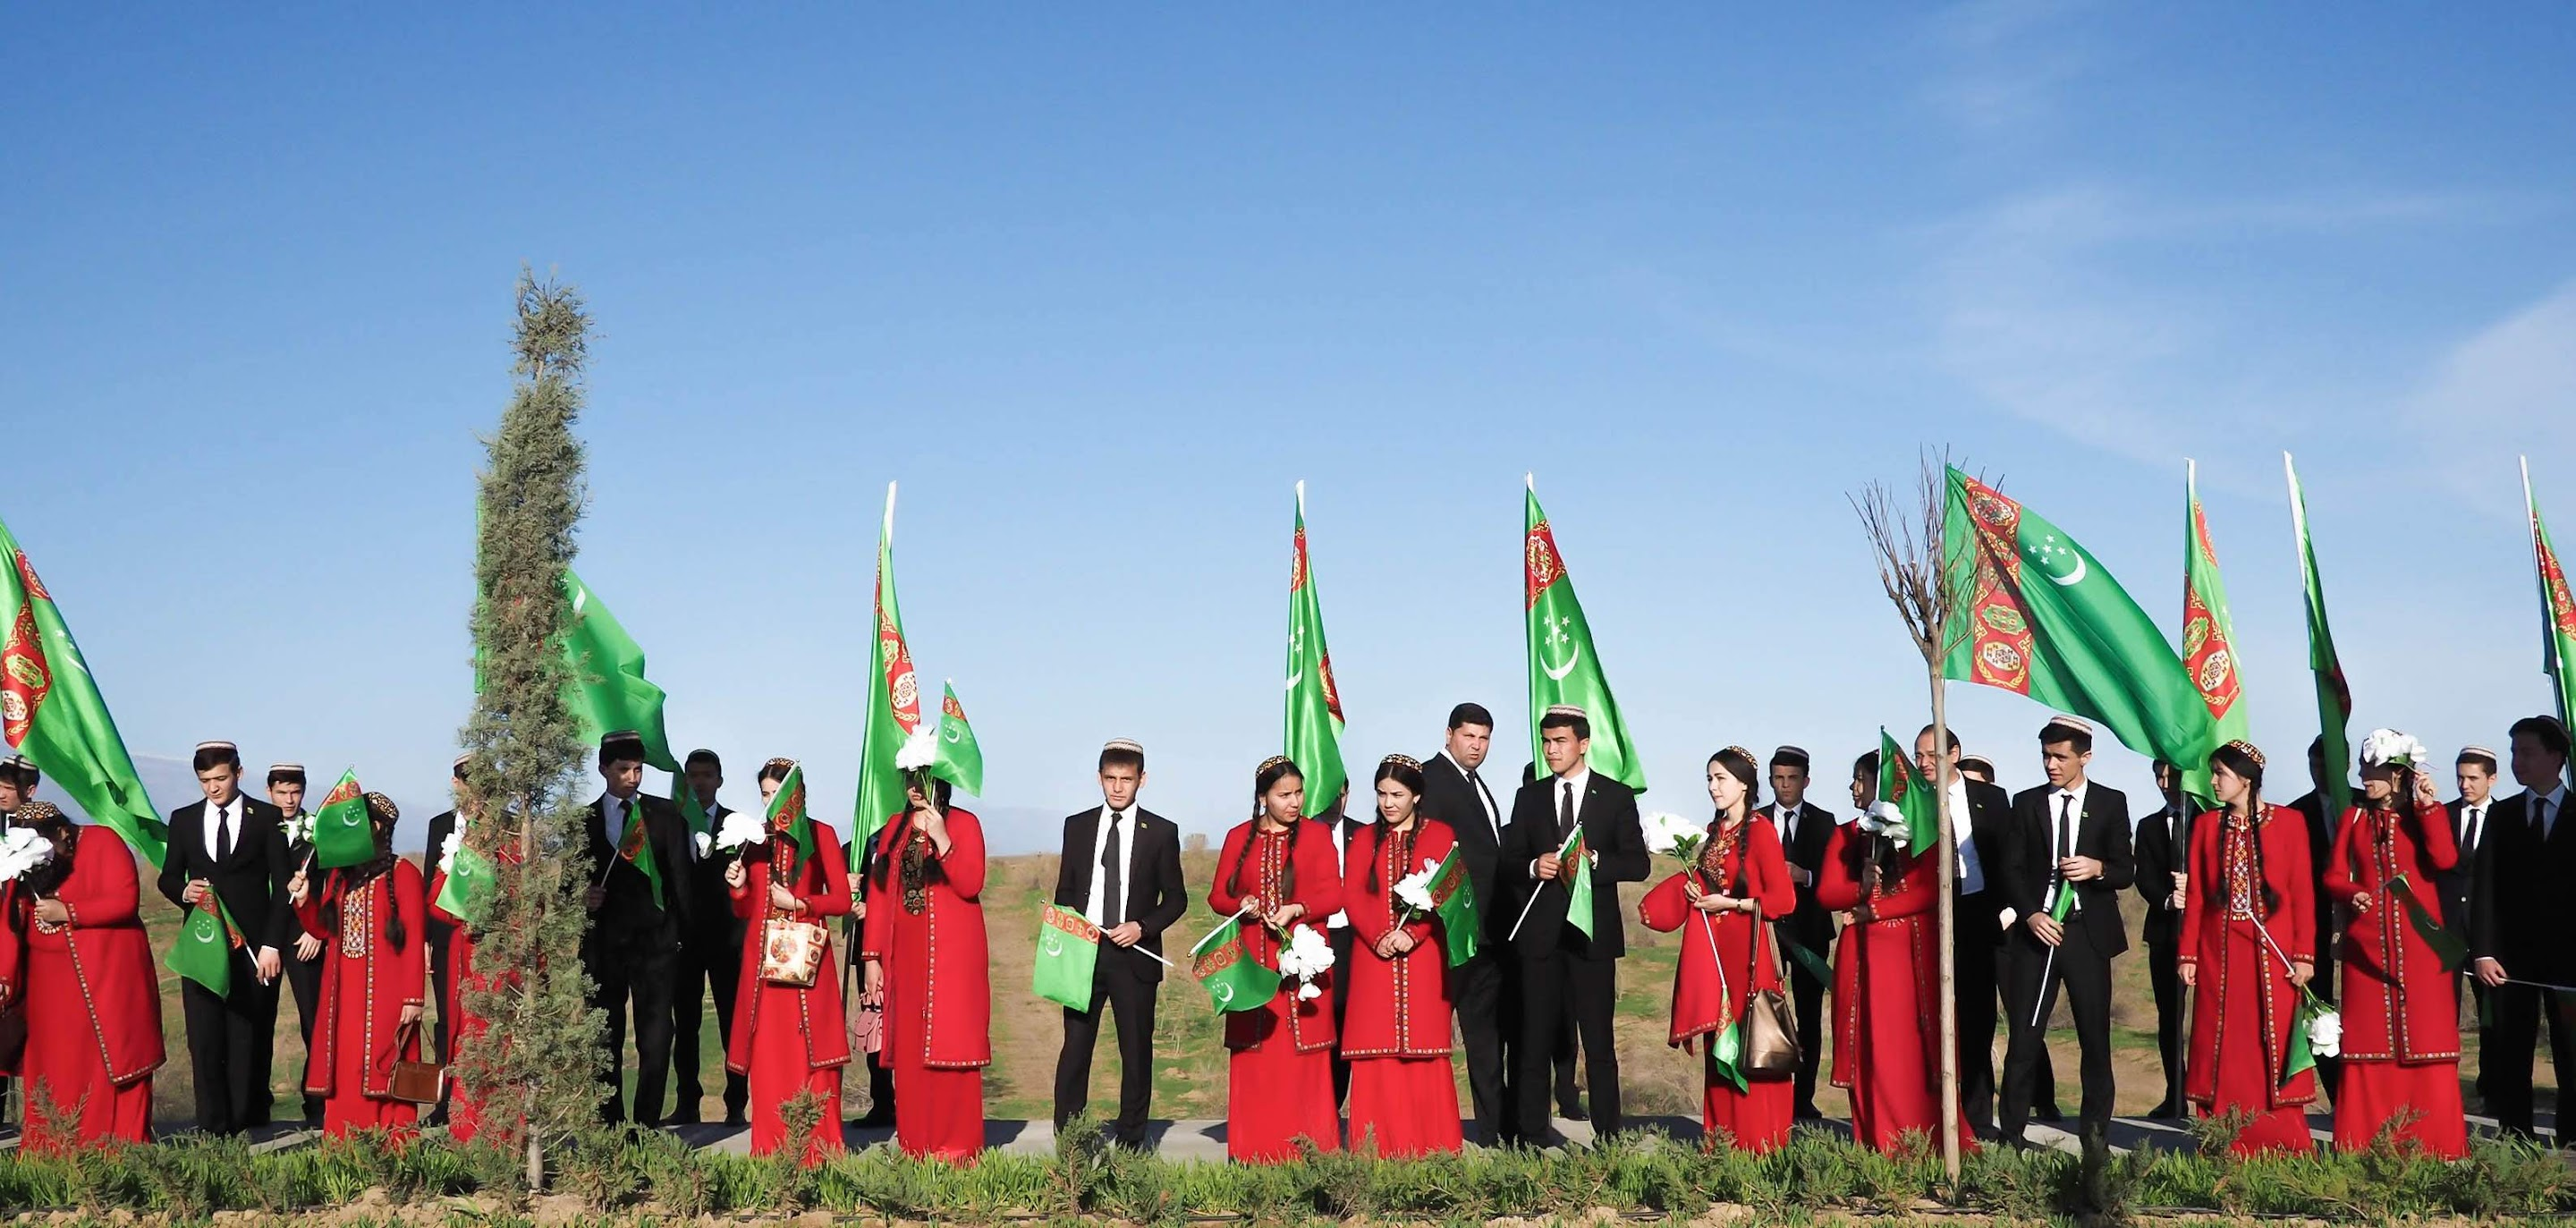 Line of Turkmen students ready to welcome the president to the Nowruz Festival